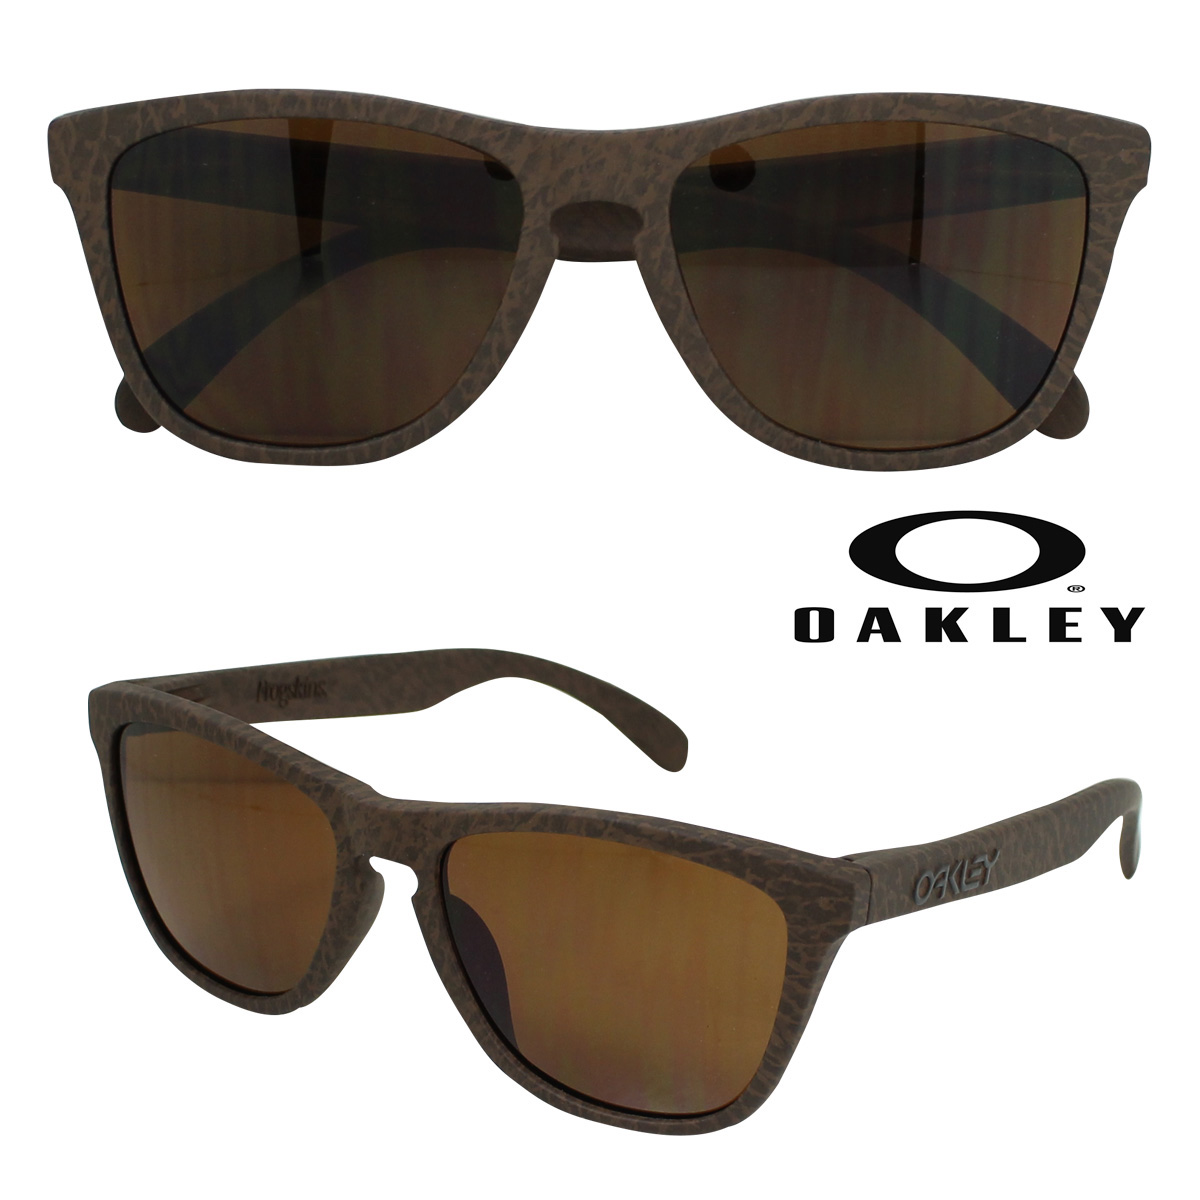 9c3951d9b8c Whats up Sports  Oakley Oakley Sunglasses Frogskins Asian Fit frog skin  Asian fitting OO9245-29 tobacco dark bronze men s women s